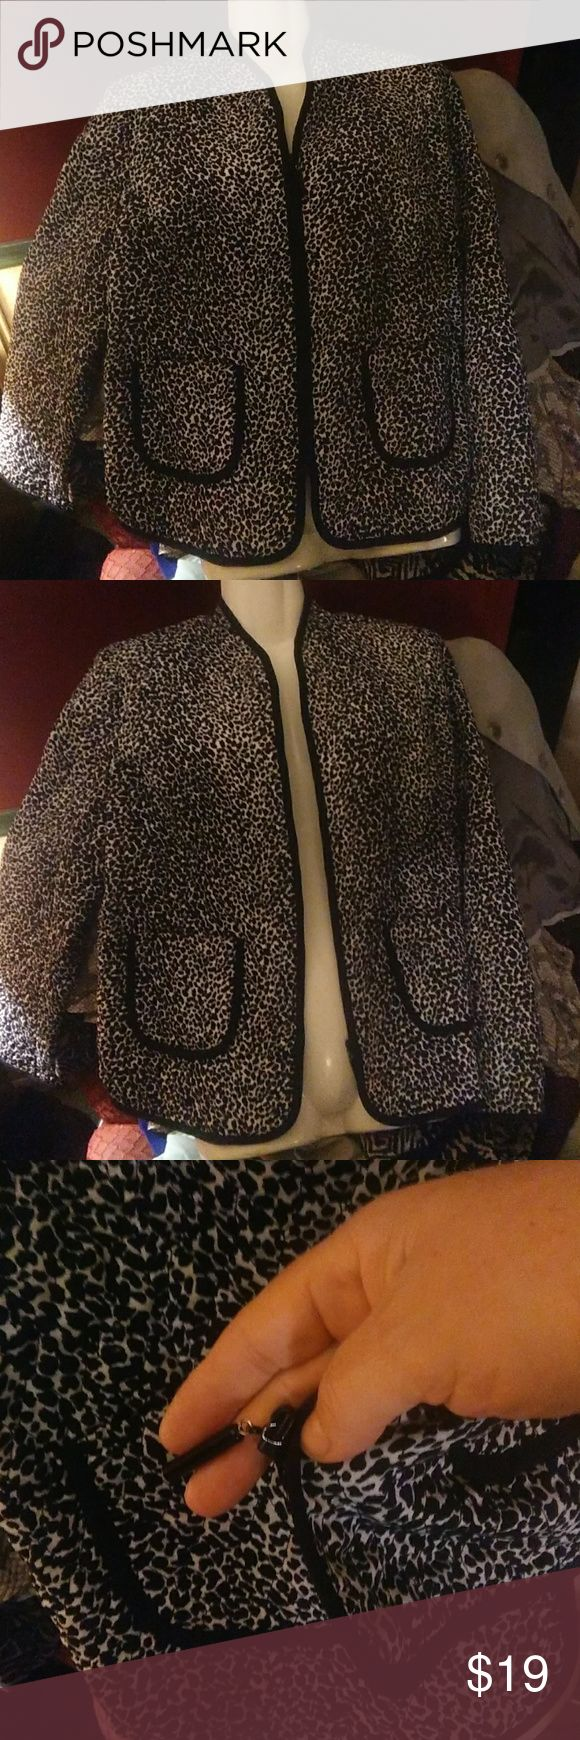 WOMEN'S ZIPPING UP LINED JACKET EUC Gorgeous black and white animal print zip up lined jacket ....this has a quilted stitched to it ..has 2 pockets in front  polyester Requirements Jackets & Coats